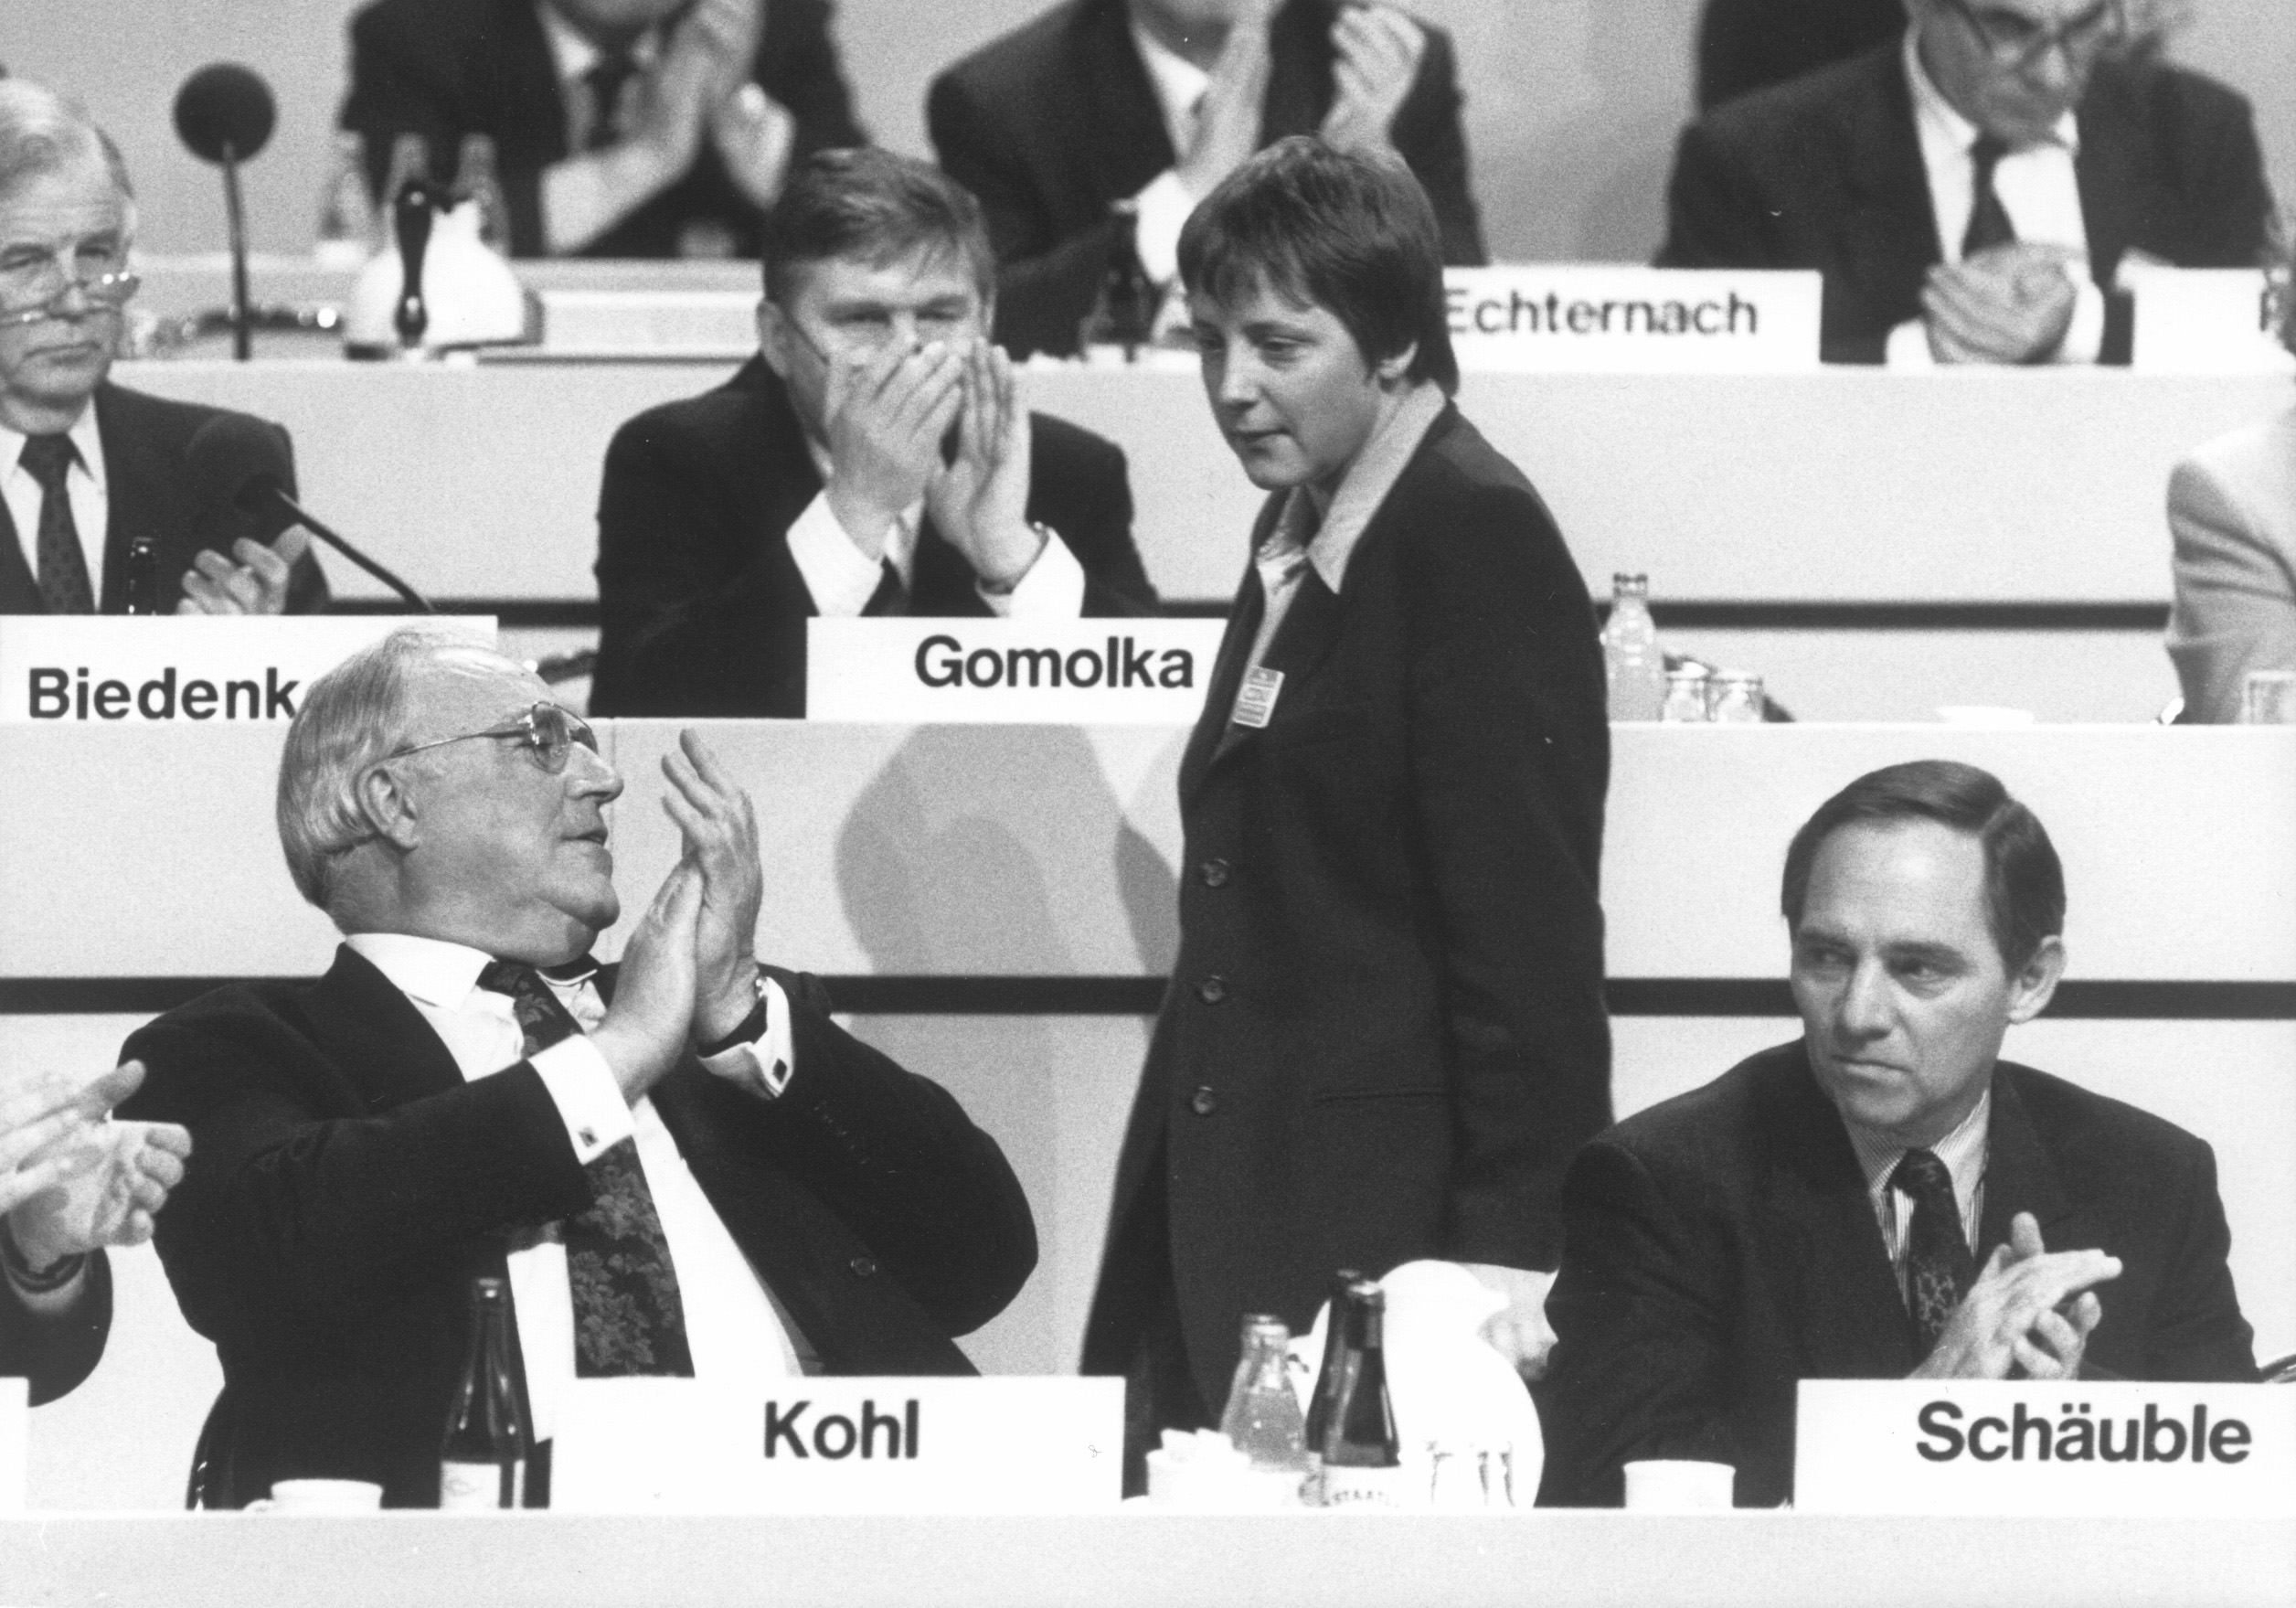 Party leader Helmut Kohl with his representitive Angela Merkel and head of the party Wolfgang Schaeuble at a CDU conference, Dezember 21, 1991, Dresden, Germany.  (Photo by Thomas Imo/Photothek via Getty Images)